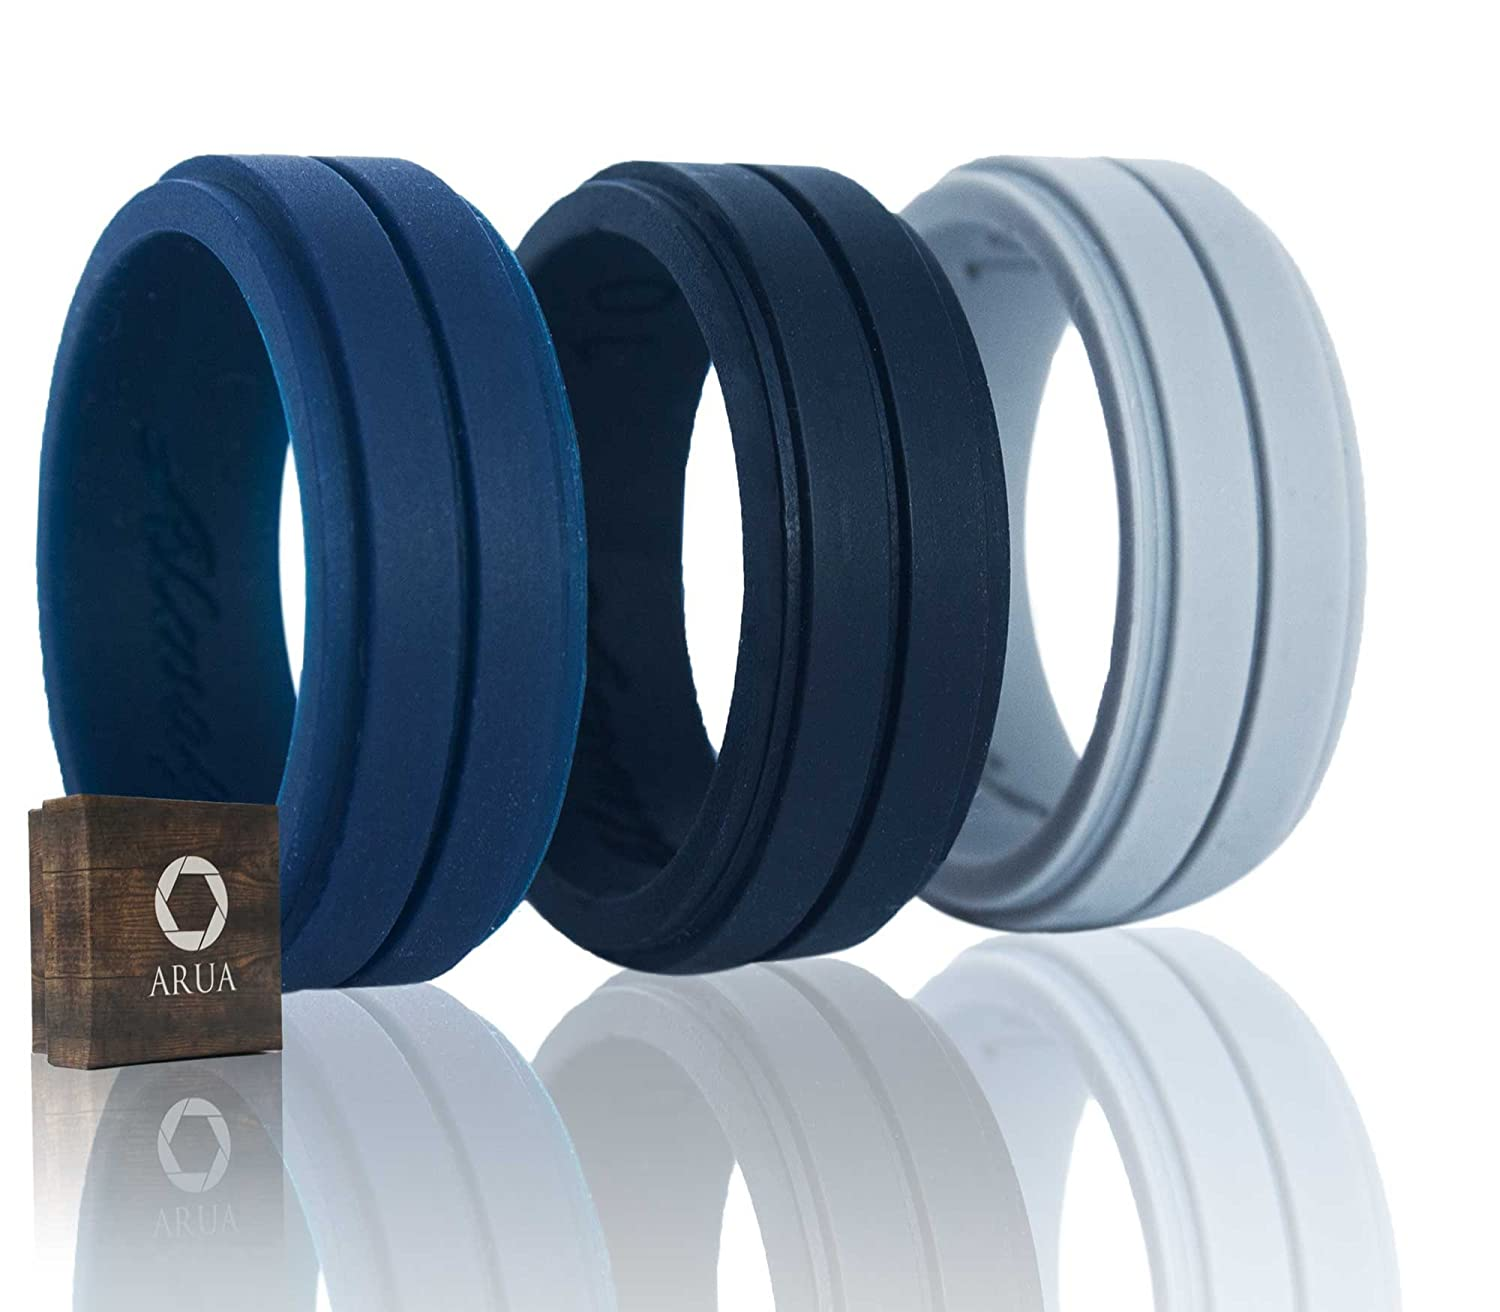 Amazon : Silicone Weddings Rings For Men By Arua 3packfortable  And Durable Rubber Wedding Bands For Sports, Gym, Outdoors 2mm Thick